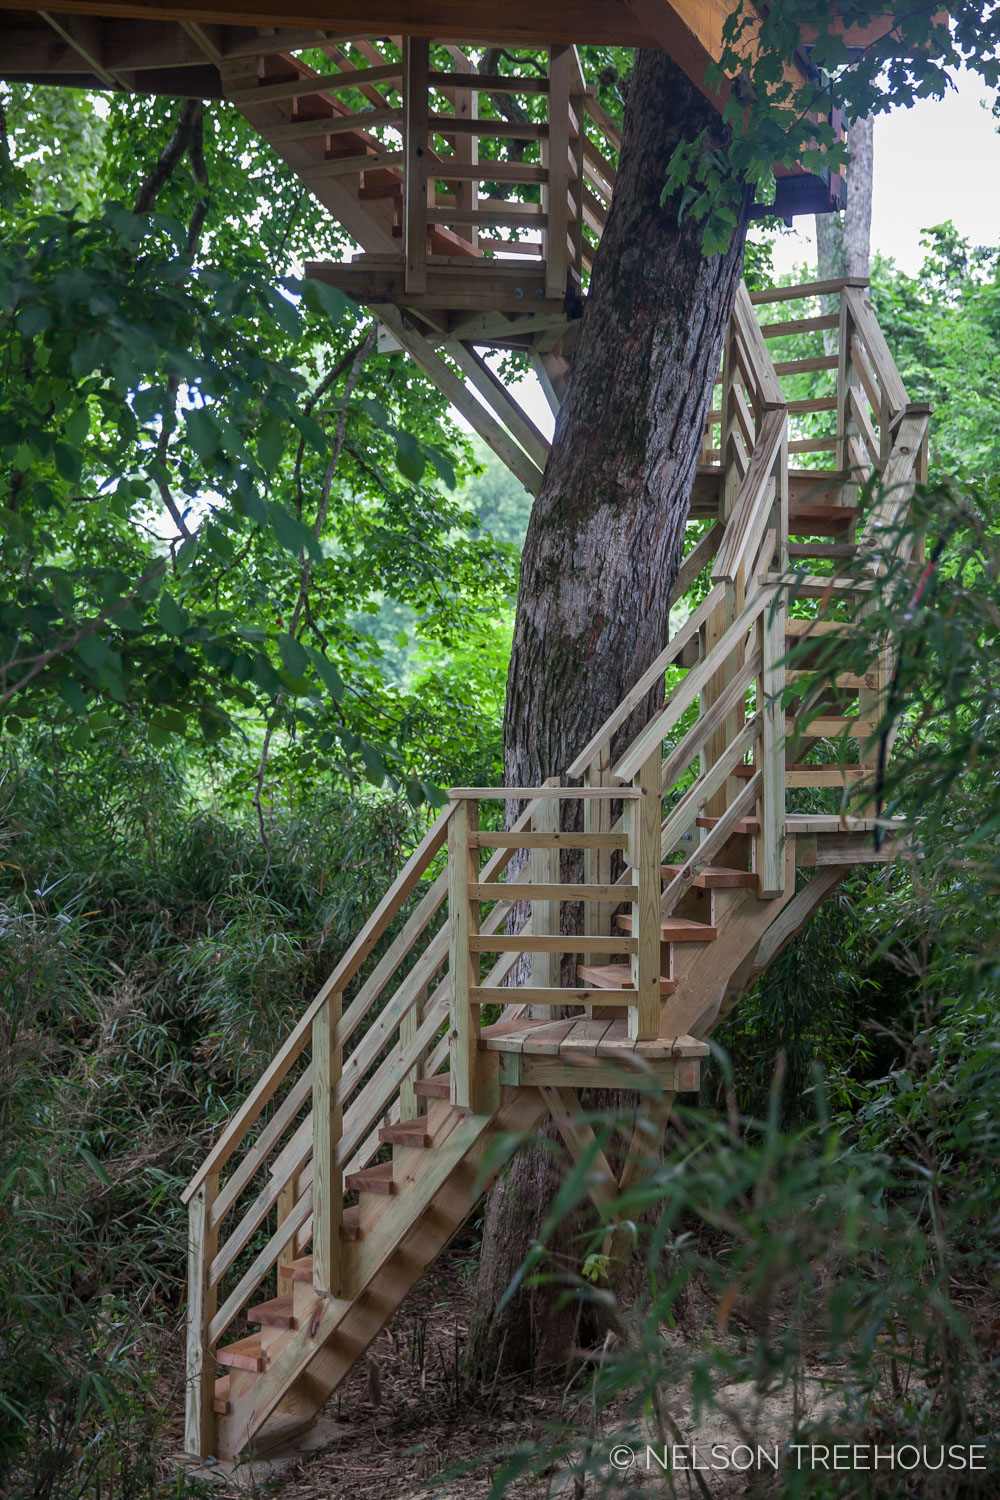 TenNessee Riverbank Treehouse Spiral Staircase